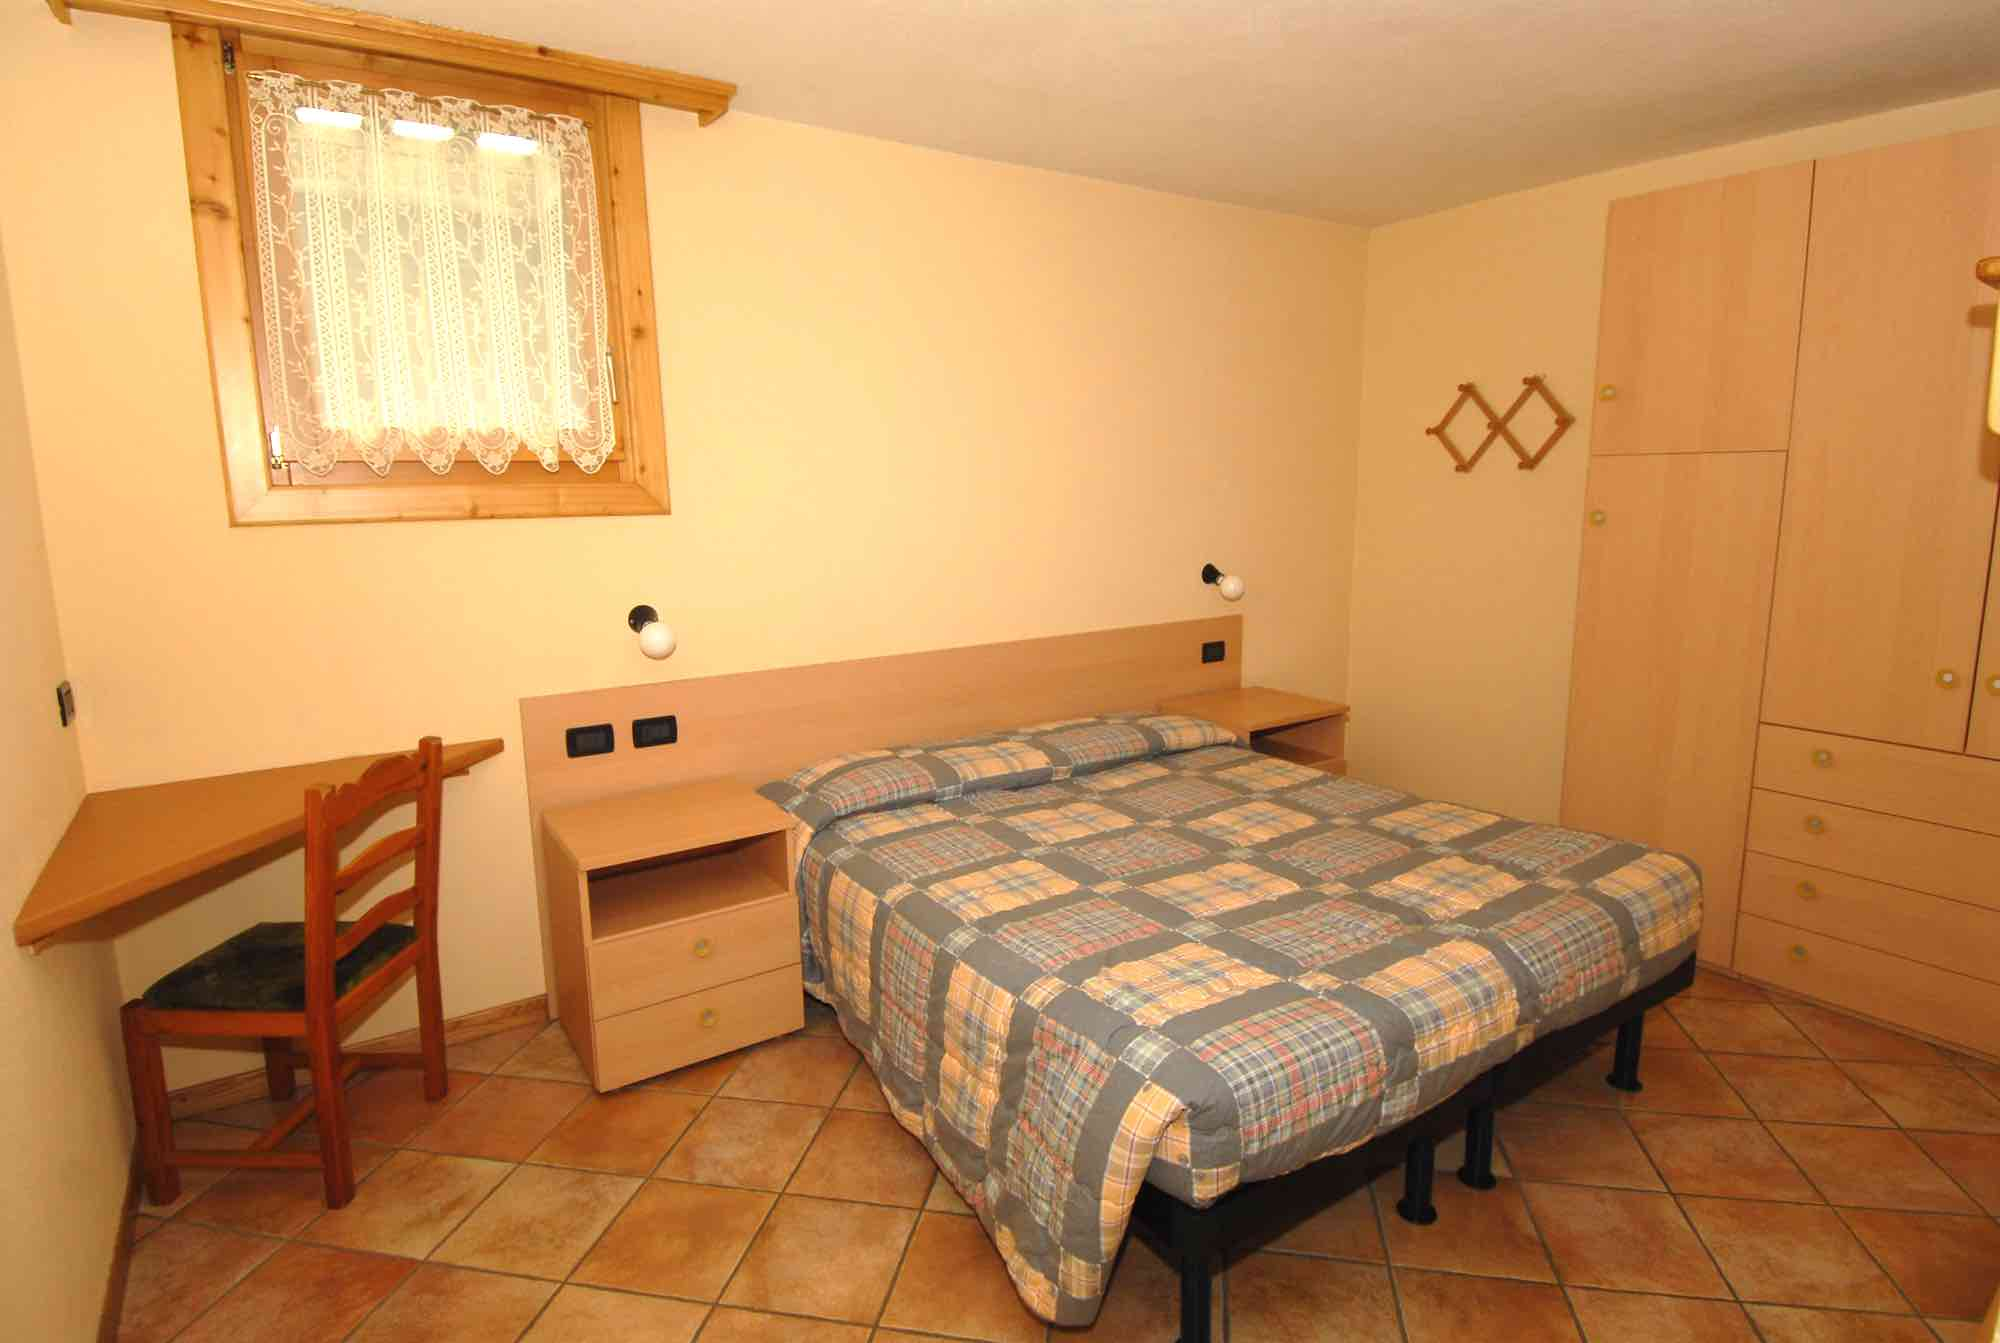 Baita Guana - Via Borch N.800, Livigno 23041 - Apartment - Taverna X2b 2